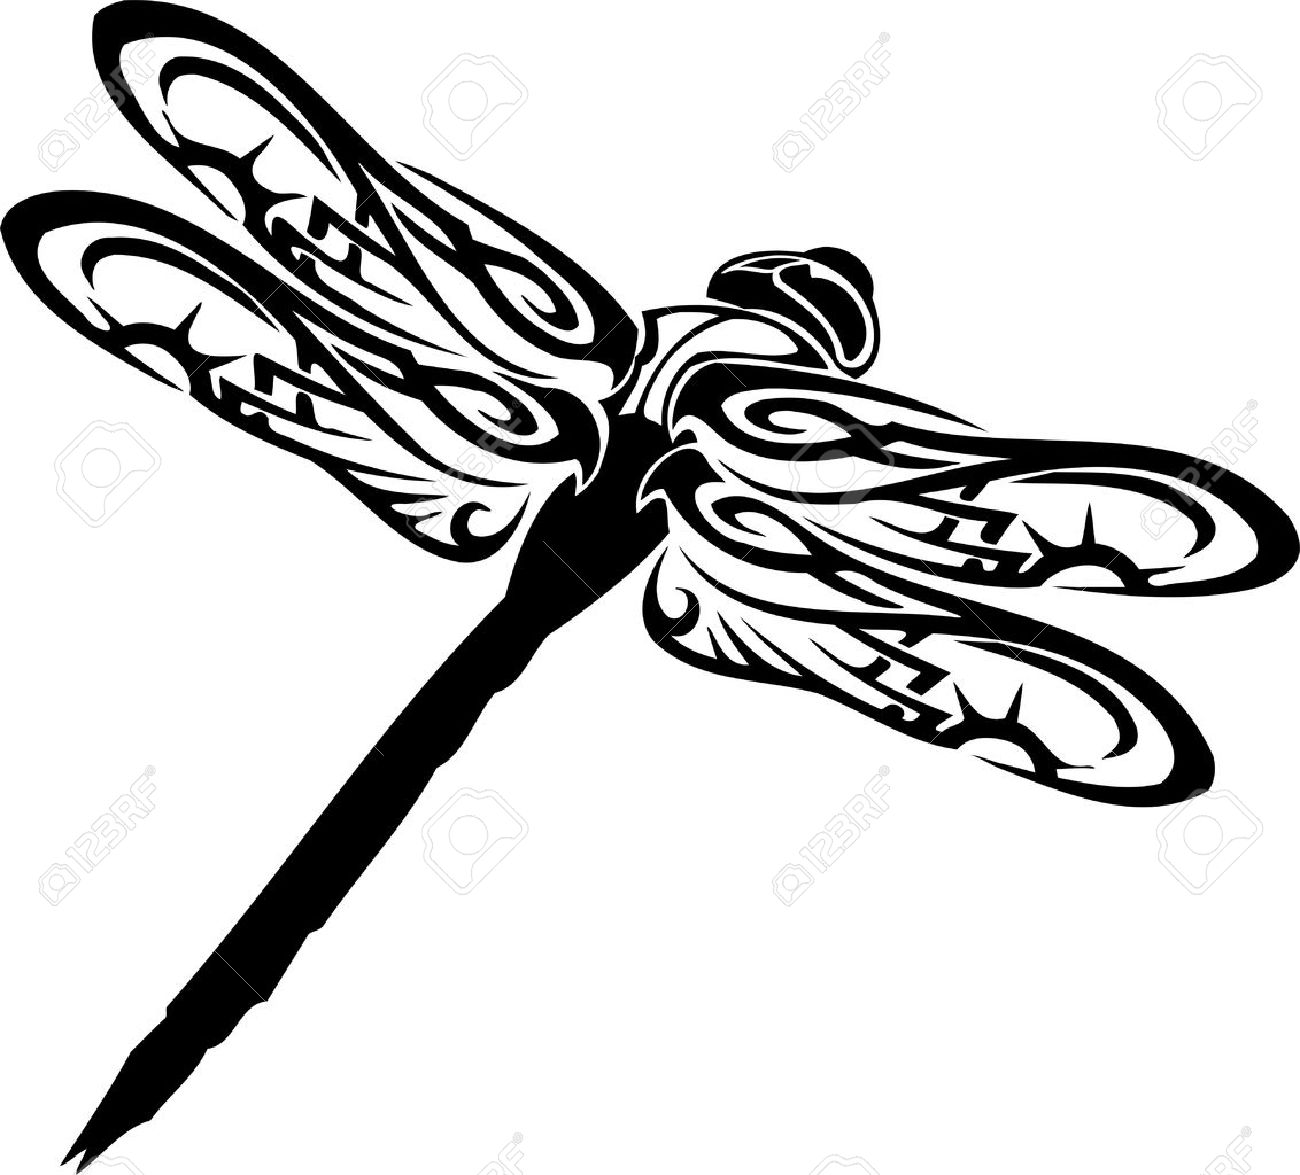 Black And White Dragonfly Silhouette Clipart Free 20 Free